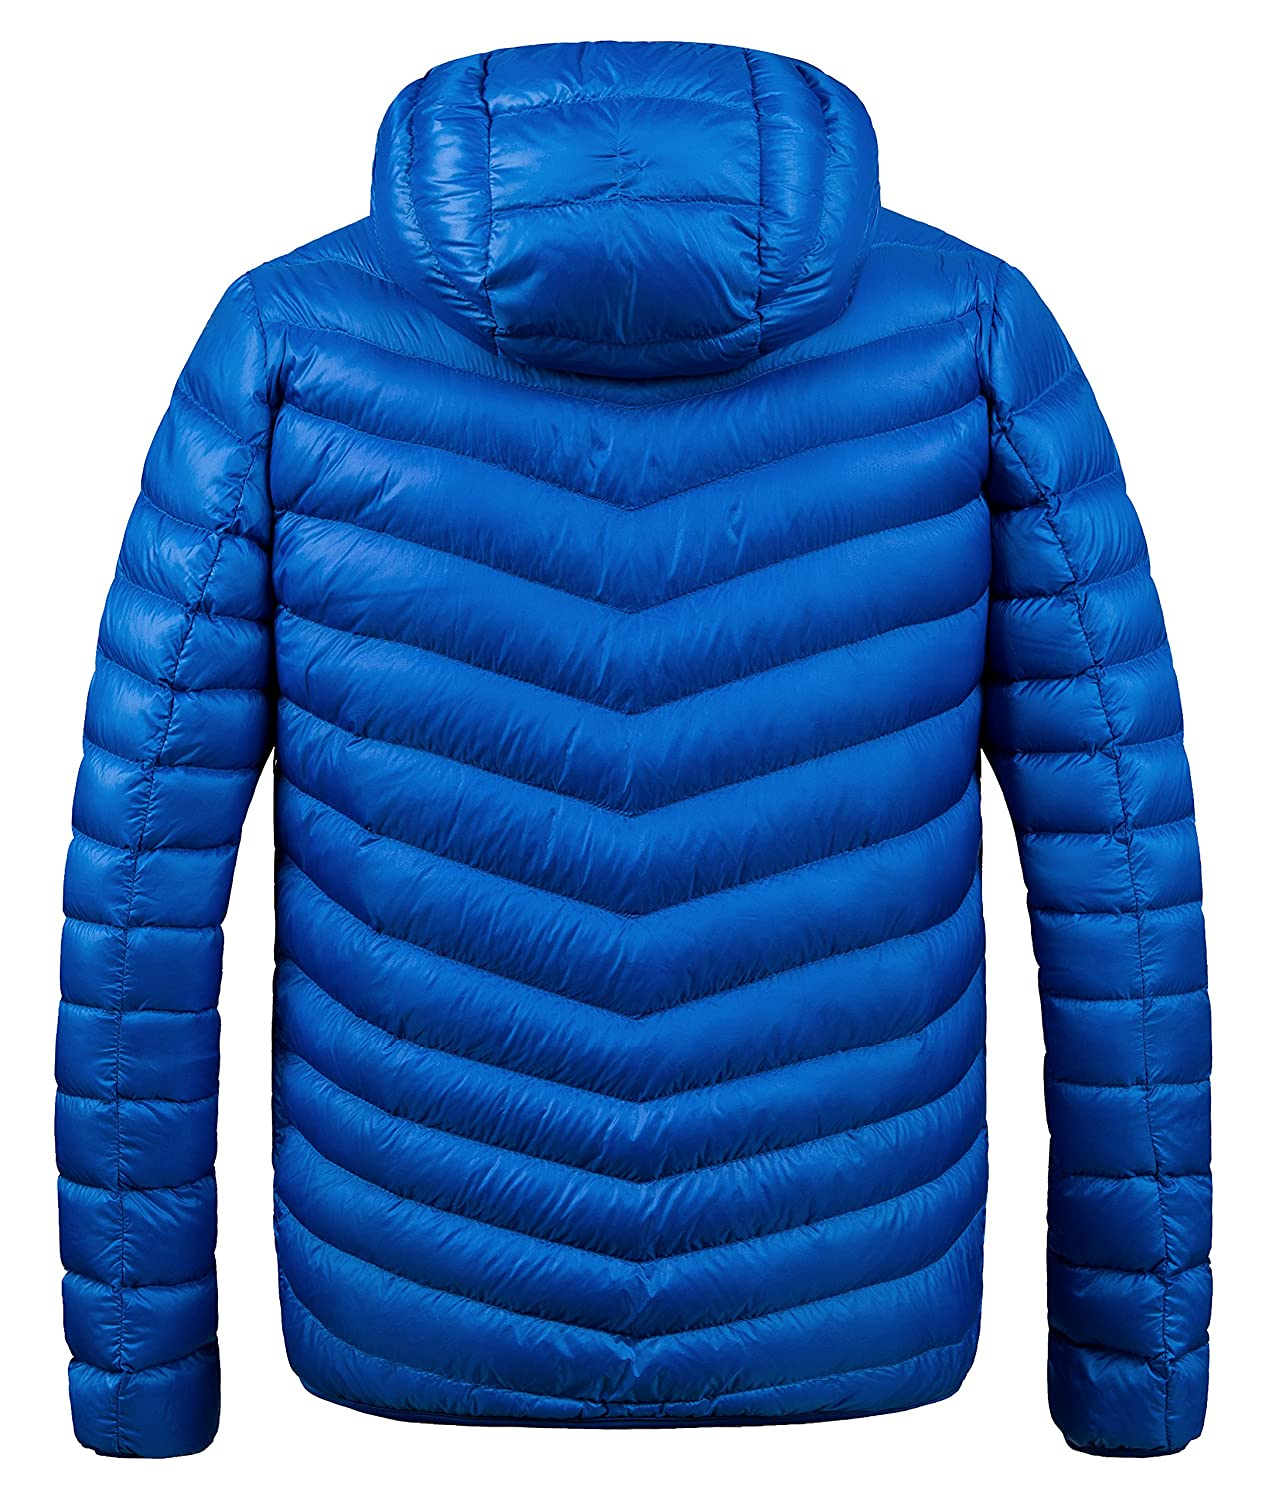 b54885131 Amazon.com: ZSHOW Men's Winter Hooded Packable Down Jacket: Clothing